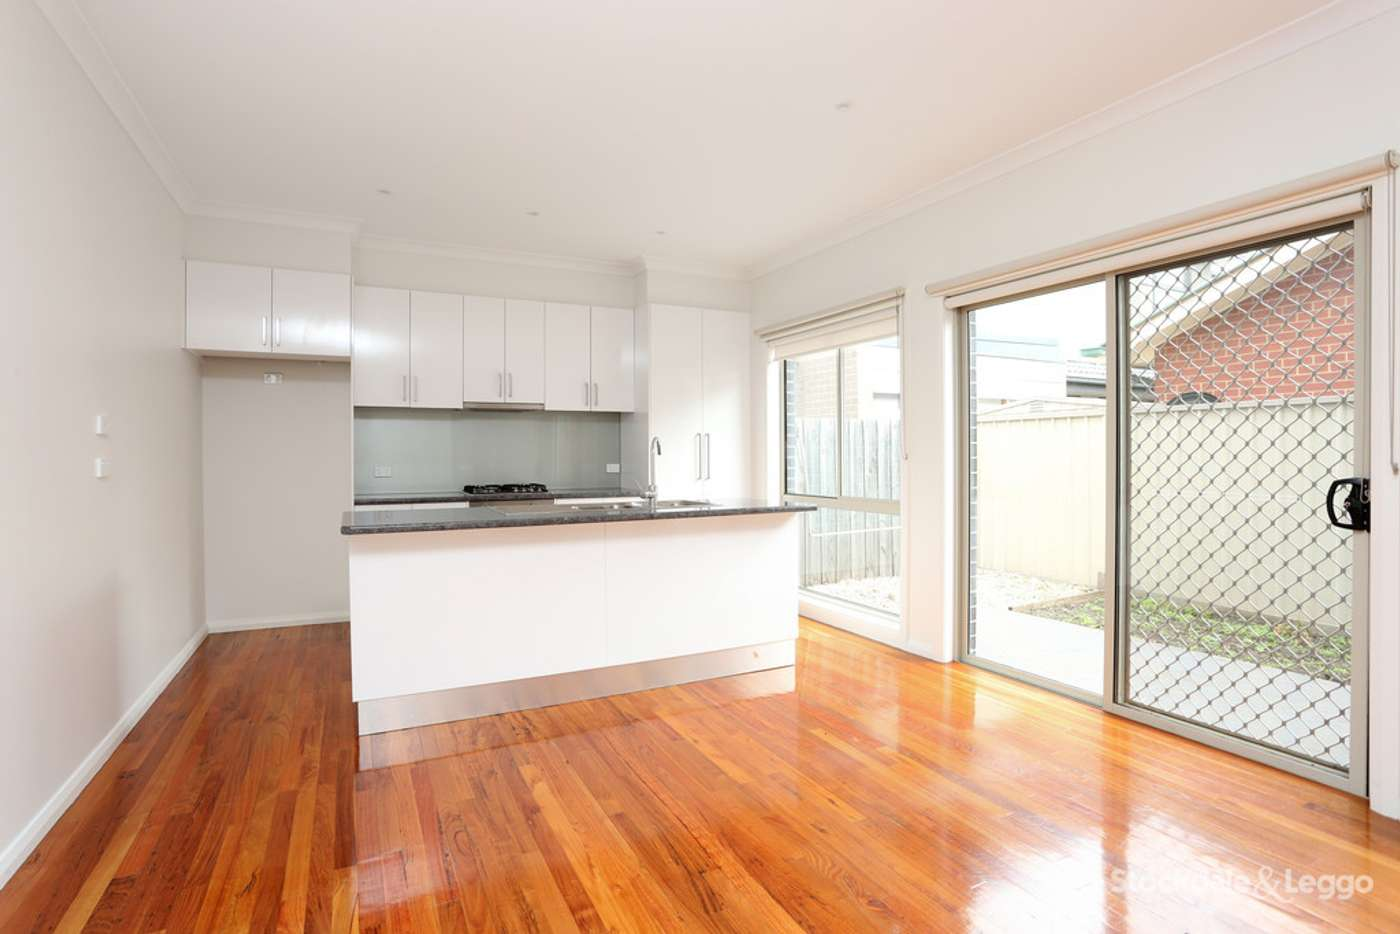 Main view of Homely townhouse listing, 21 Heather Crt, Glenroy VIC 3046